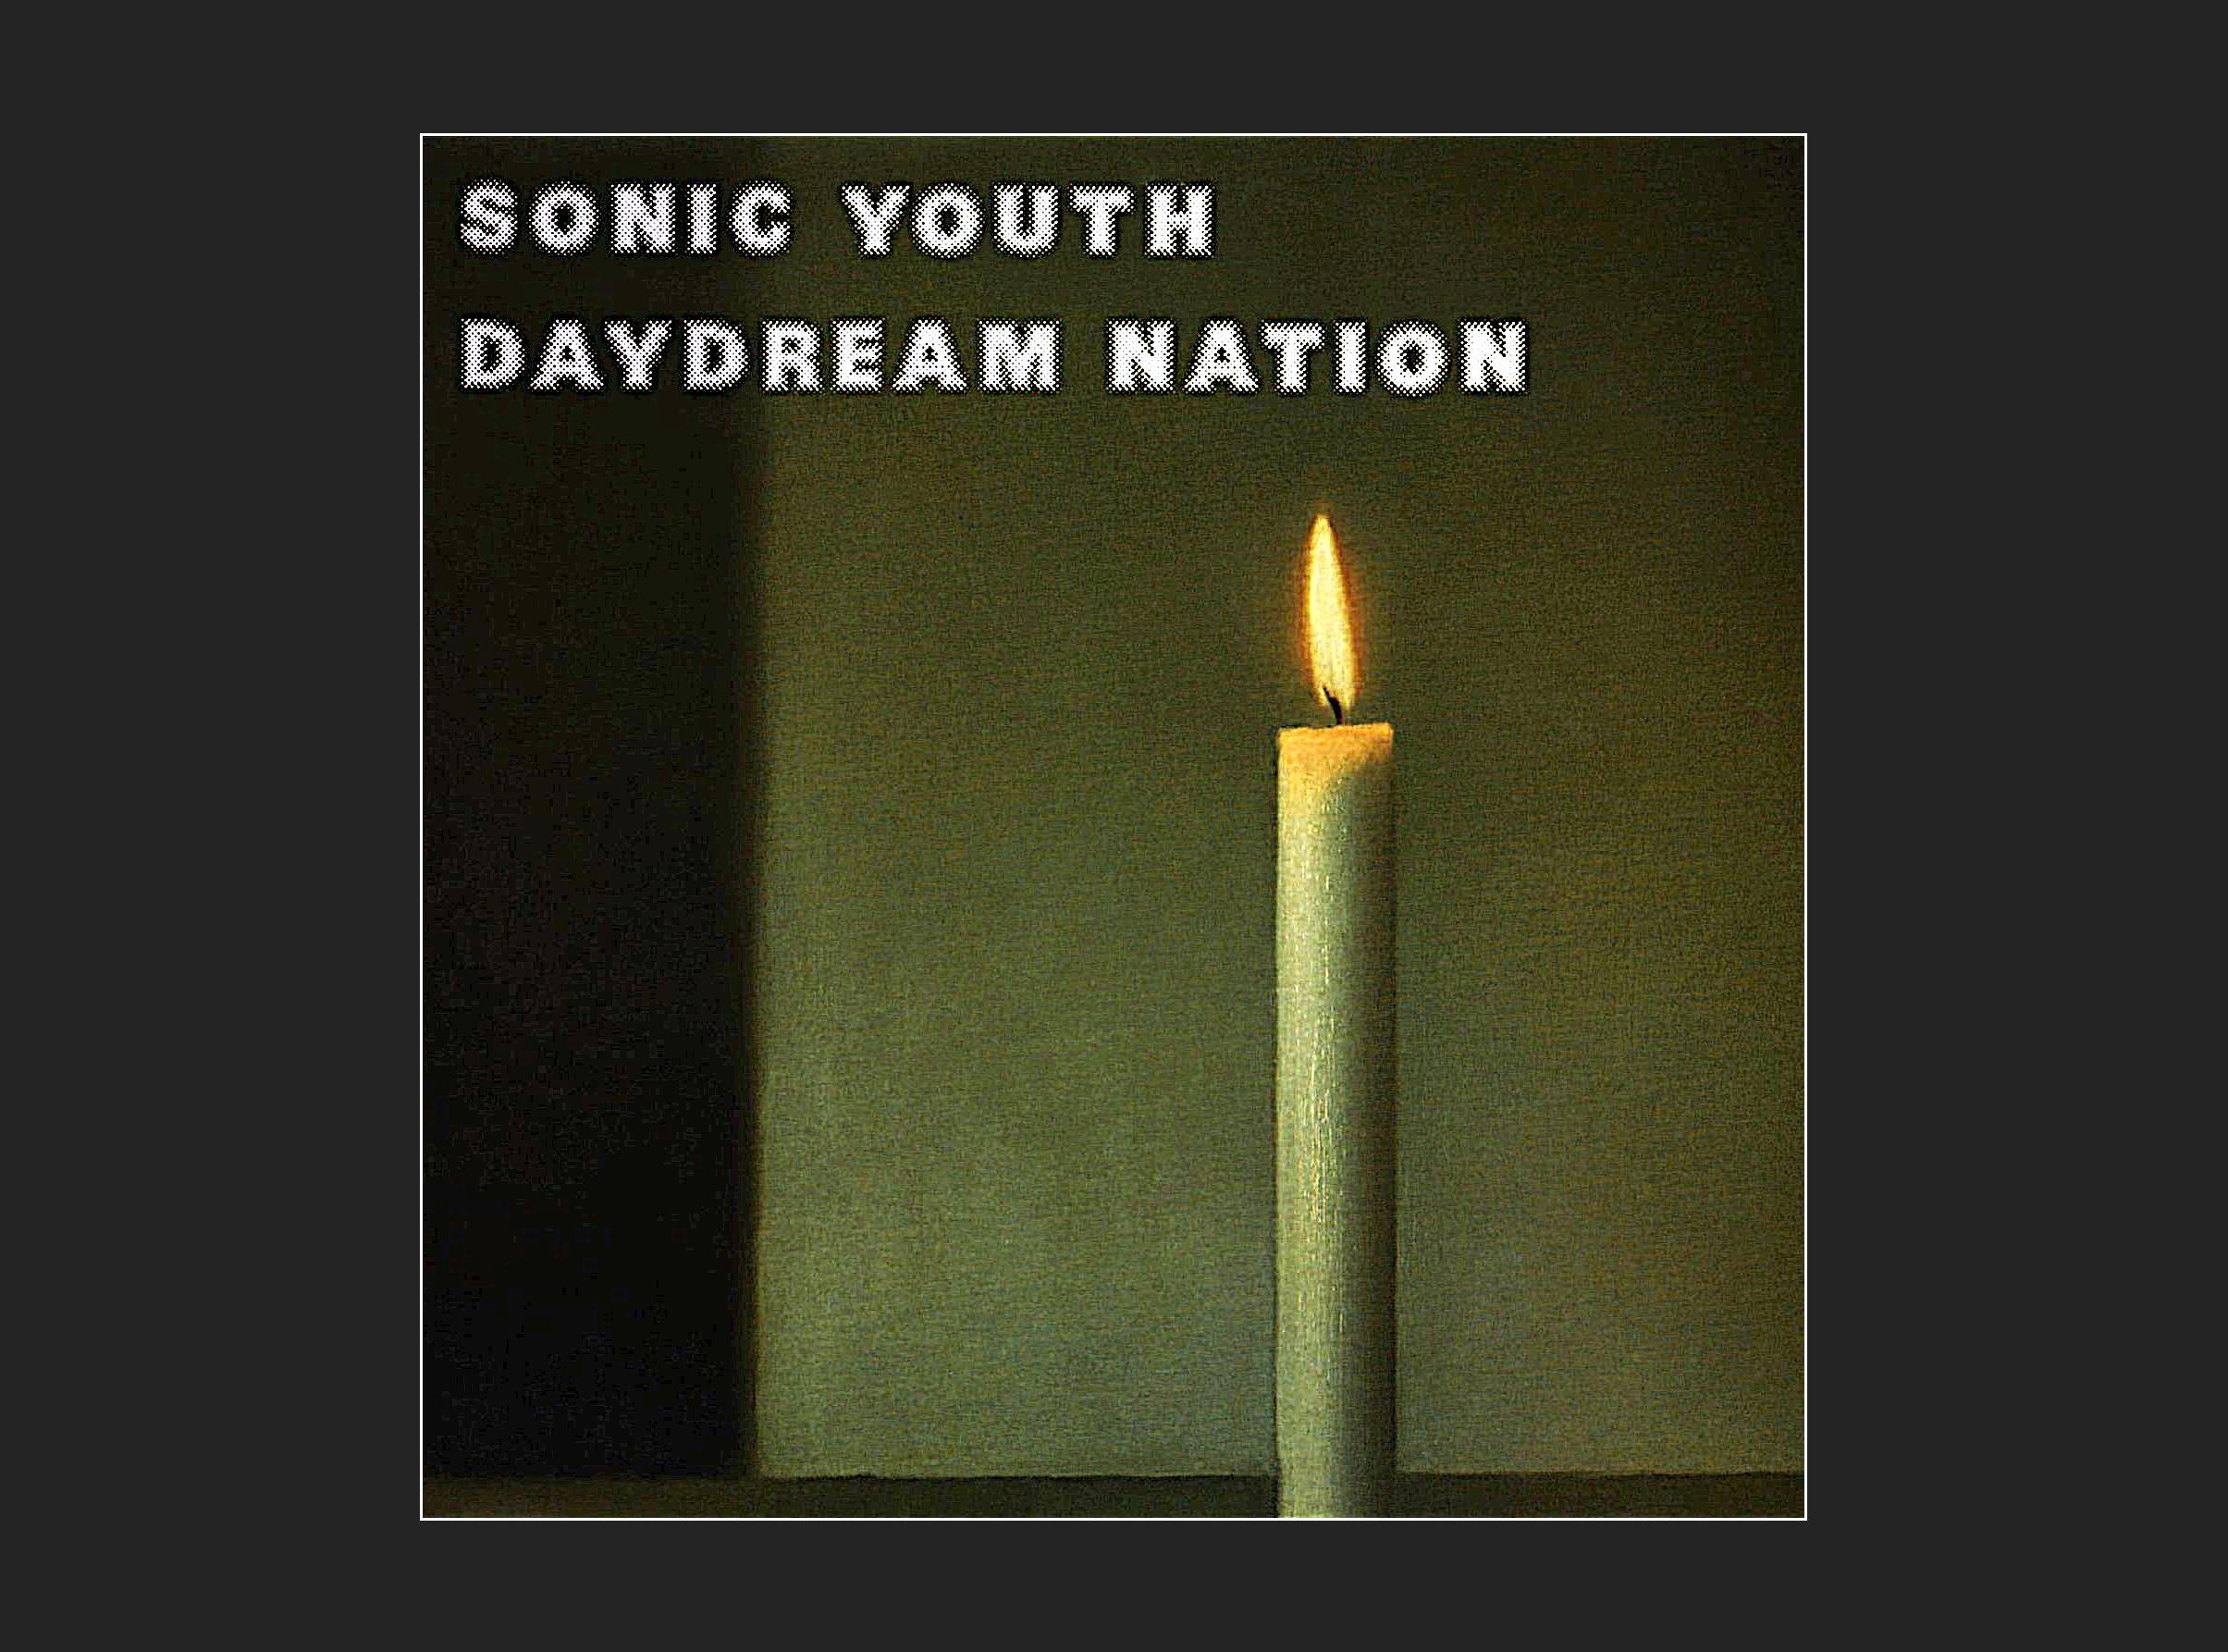 SONIC YOUTH. DAYDREAM NATION (1988). Affreschi di rumore nella desolazione contemporanea